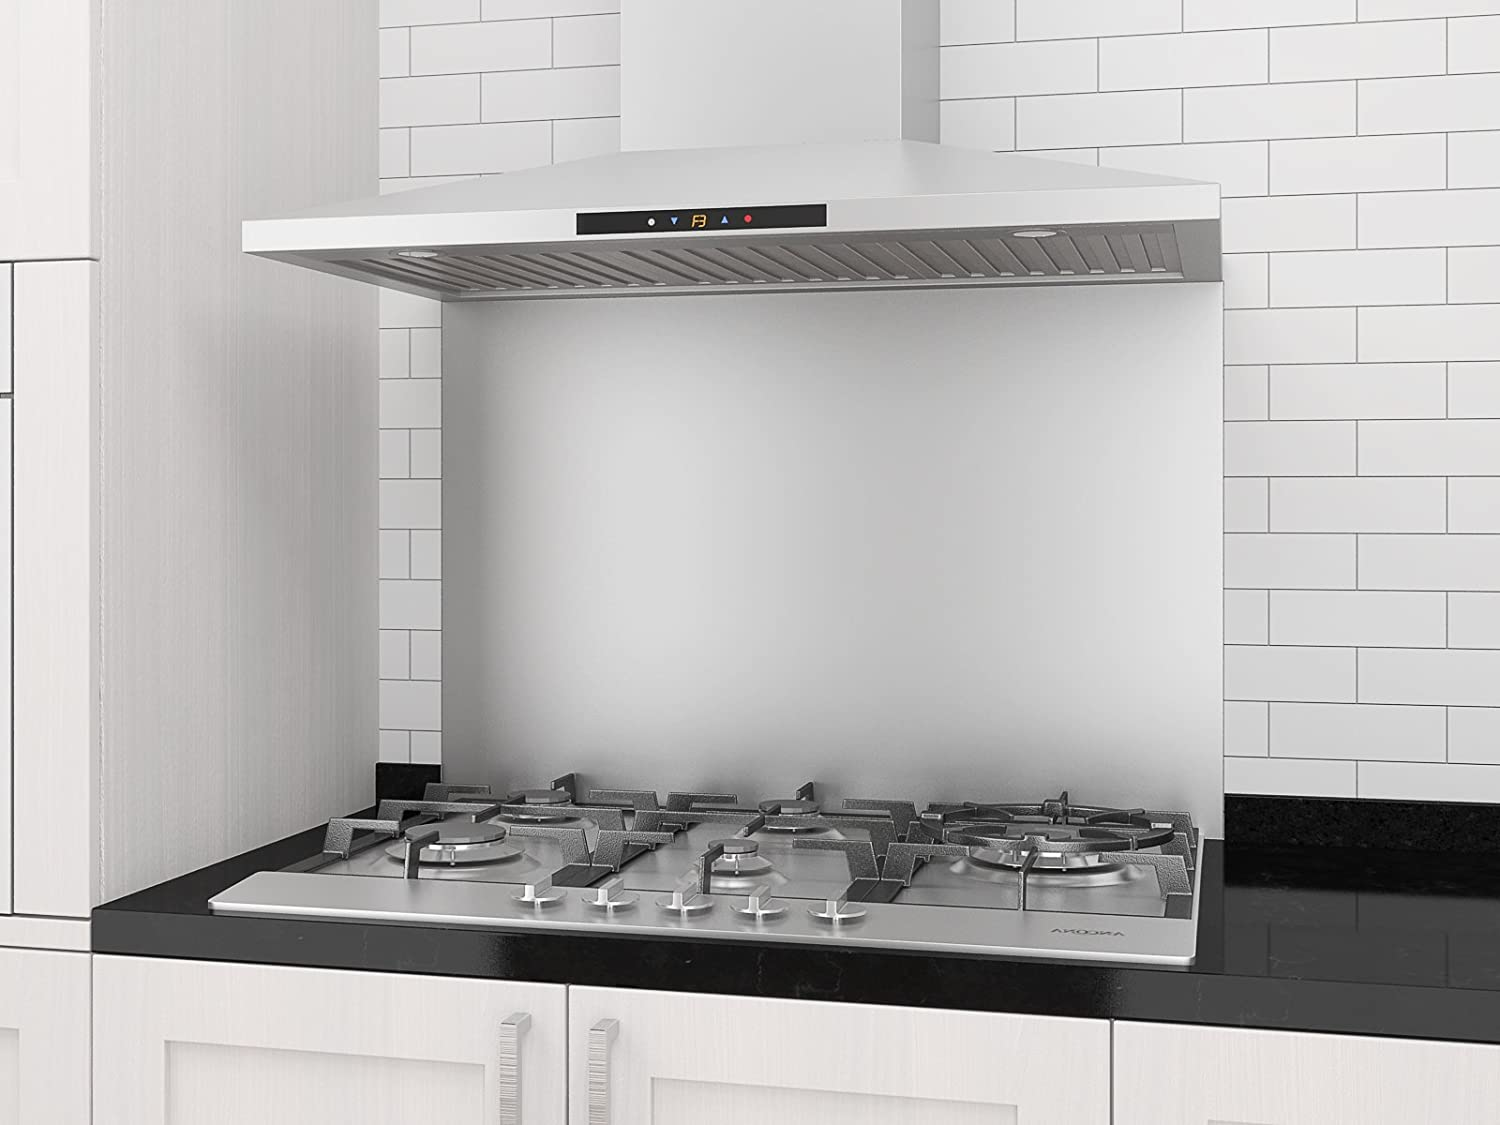 Stainless Steel 30-Inch Ancona Chef WPC430 Wall-Mounted Pyramid Style Convertible Range Hood